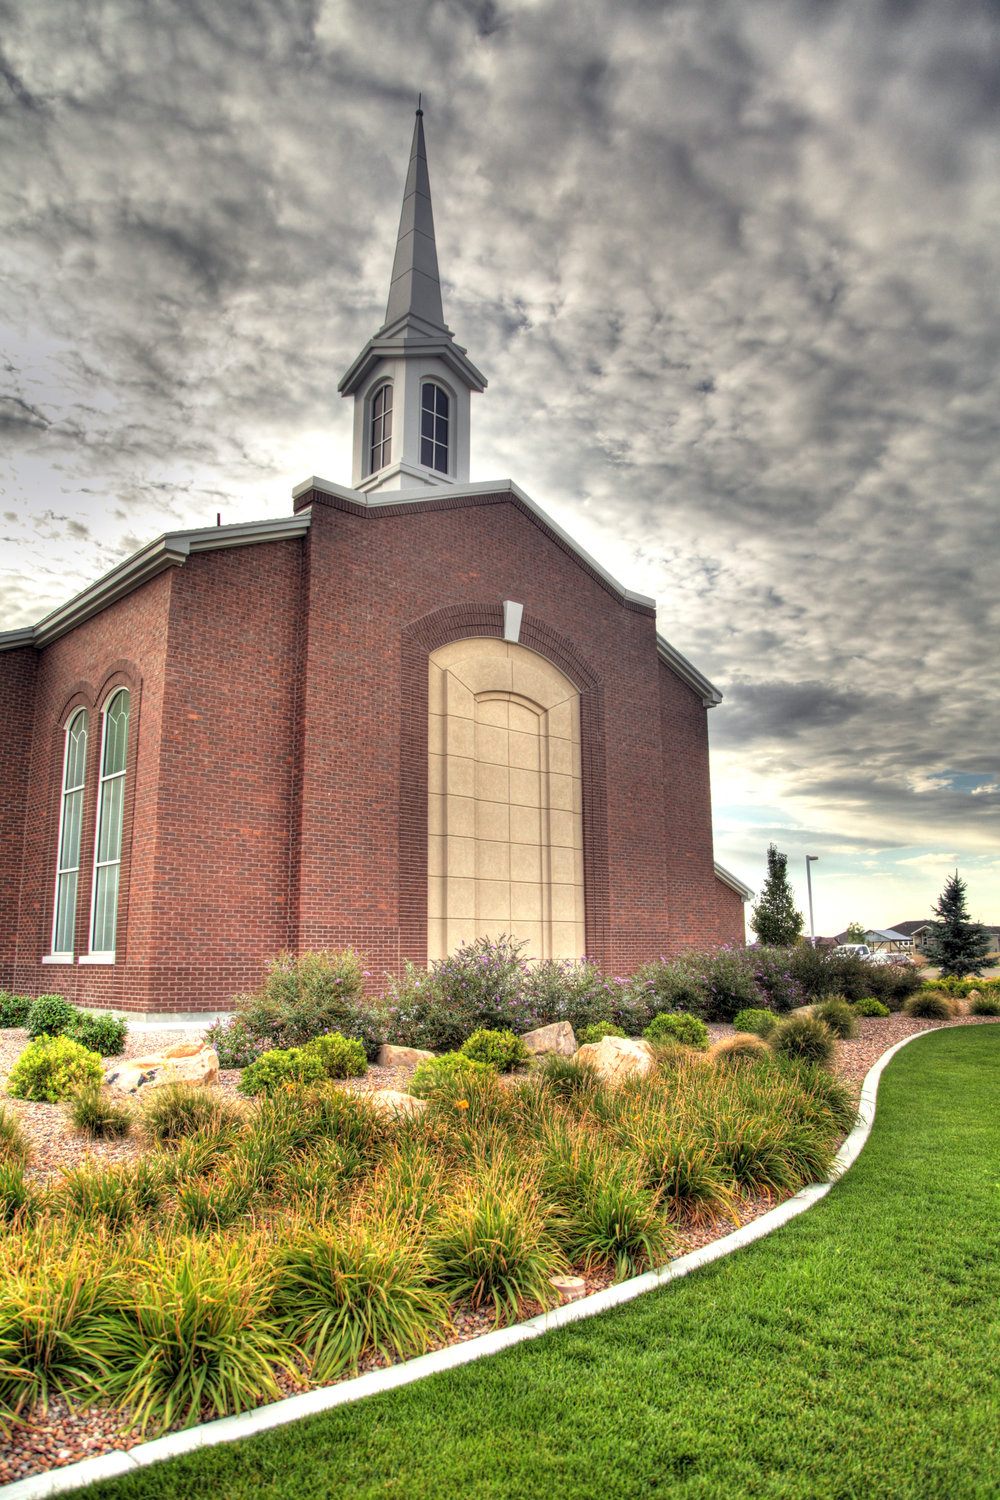 WEST HAVEN WARD & KAYSVILLE STAKE CENTER